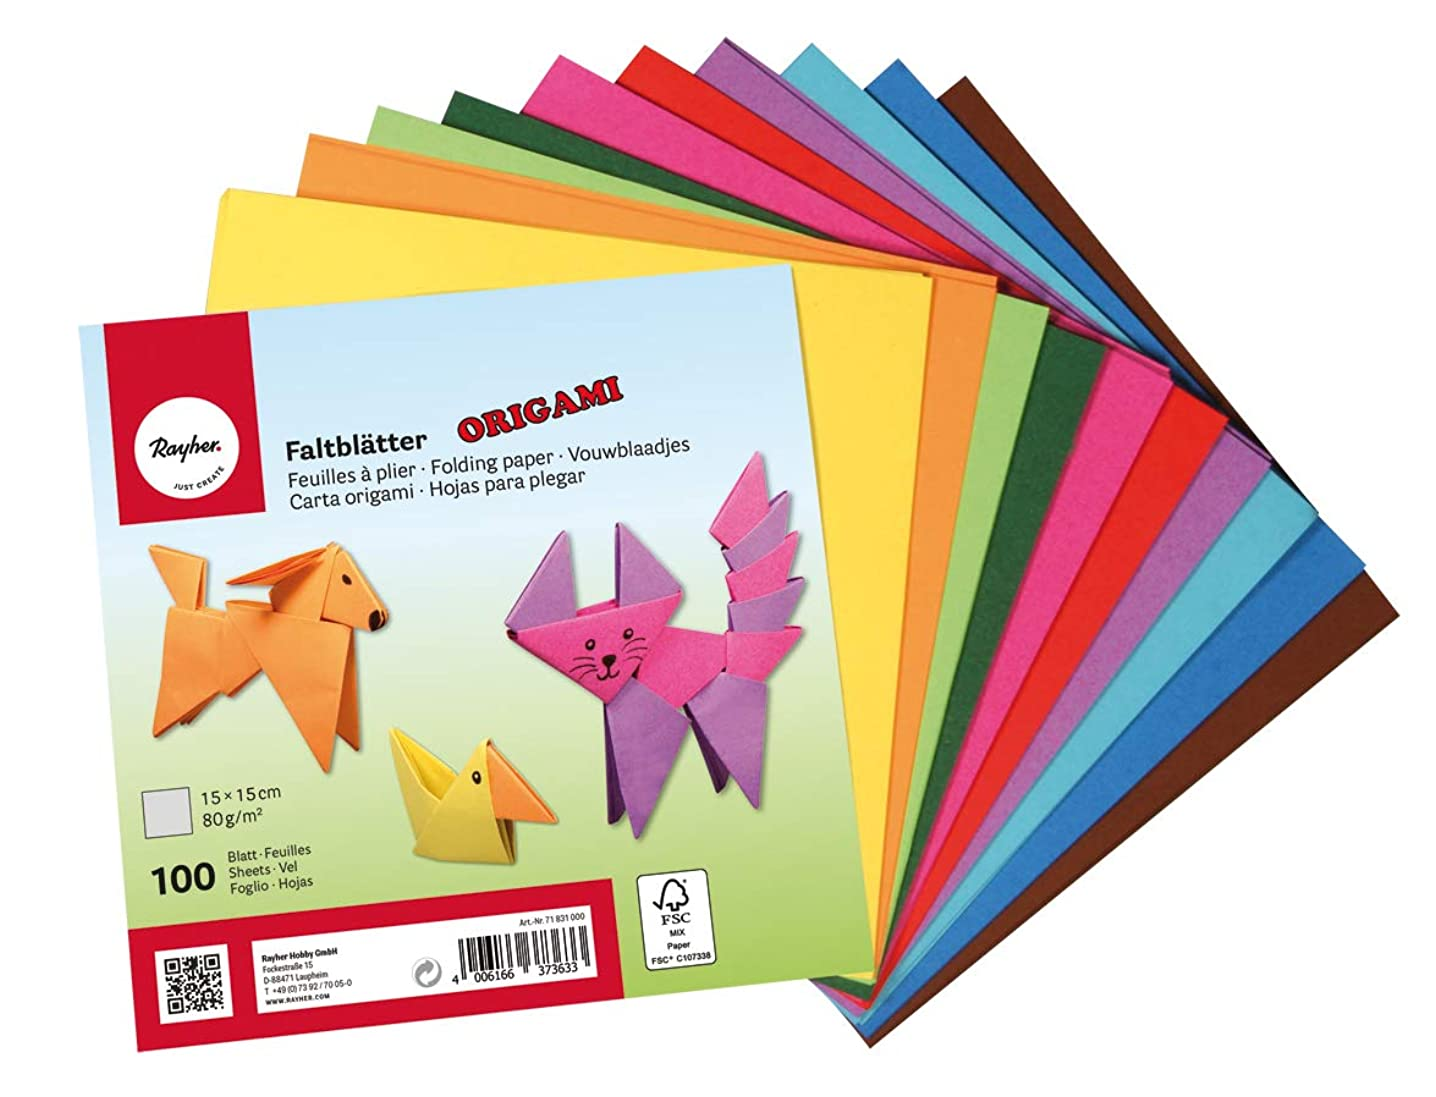 Rayher 71831000 Origami Paper, Origami Folding Paper Pack, 100 Sheets and 10 Assorted Colours, 15x15cm